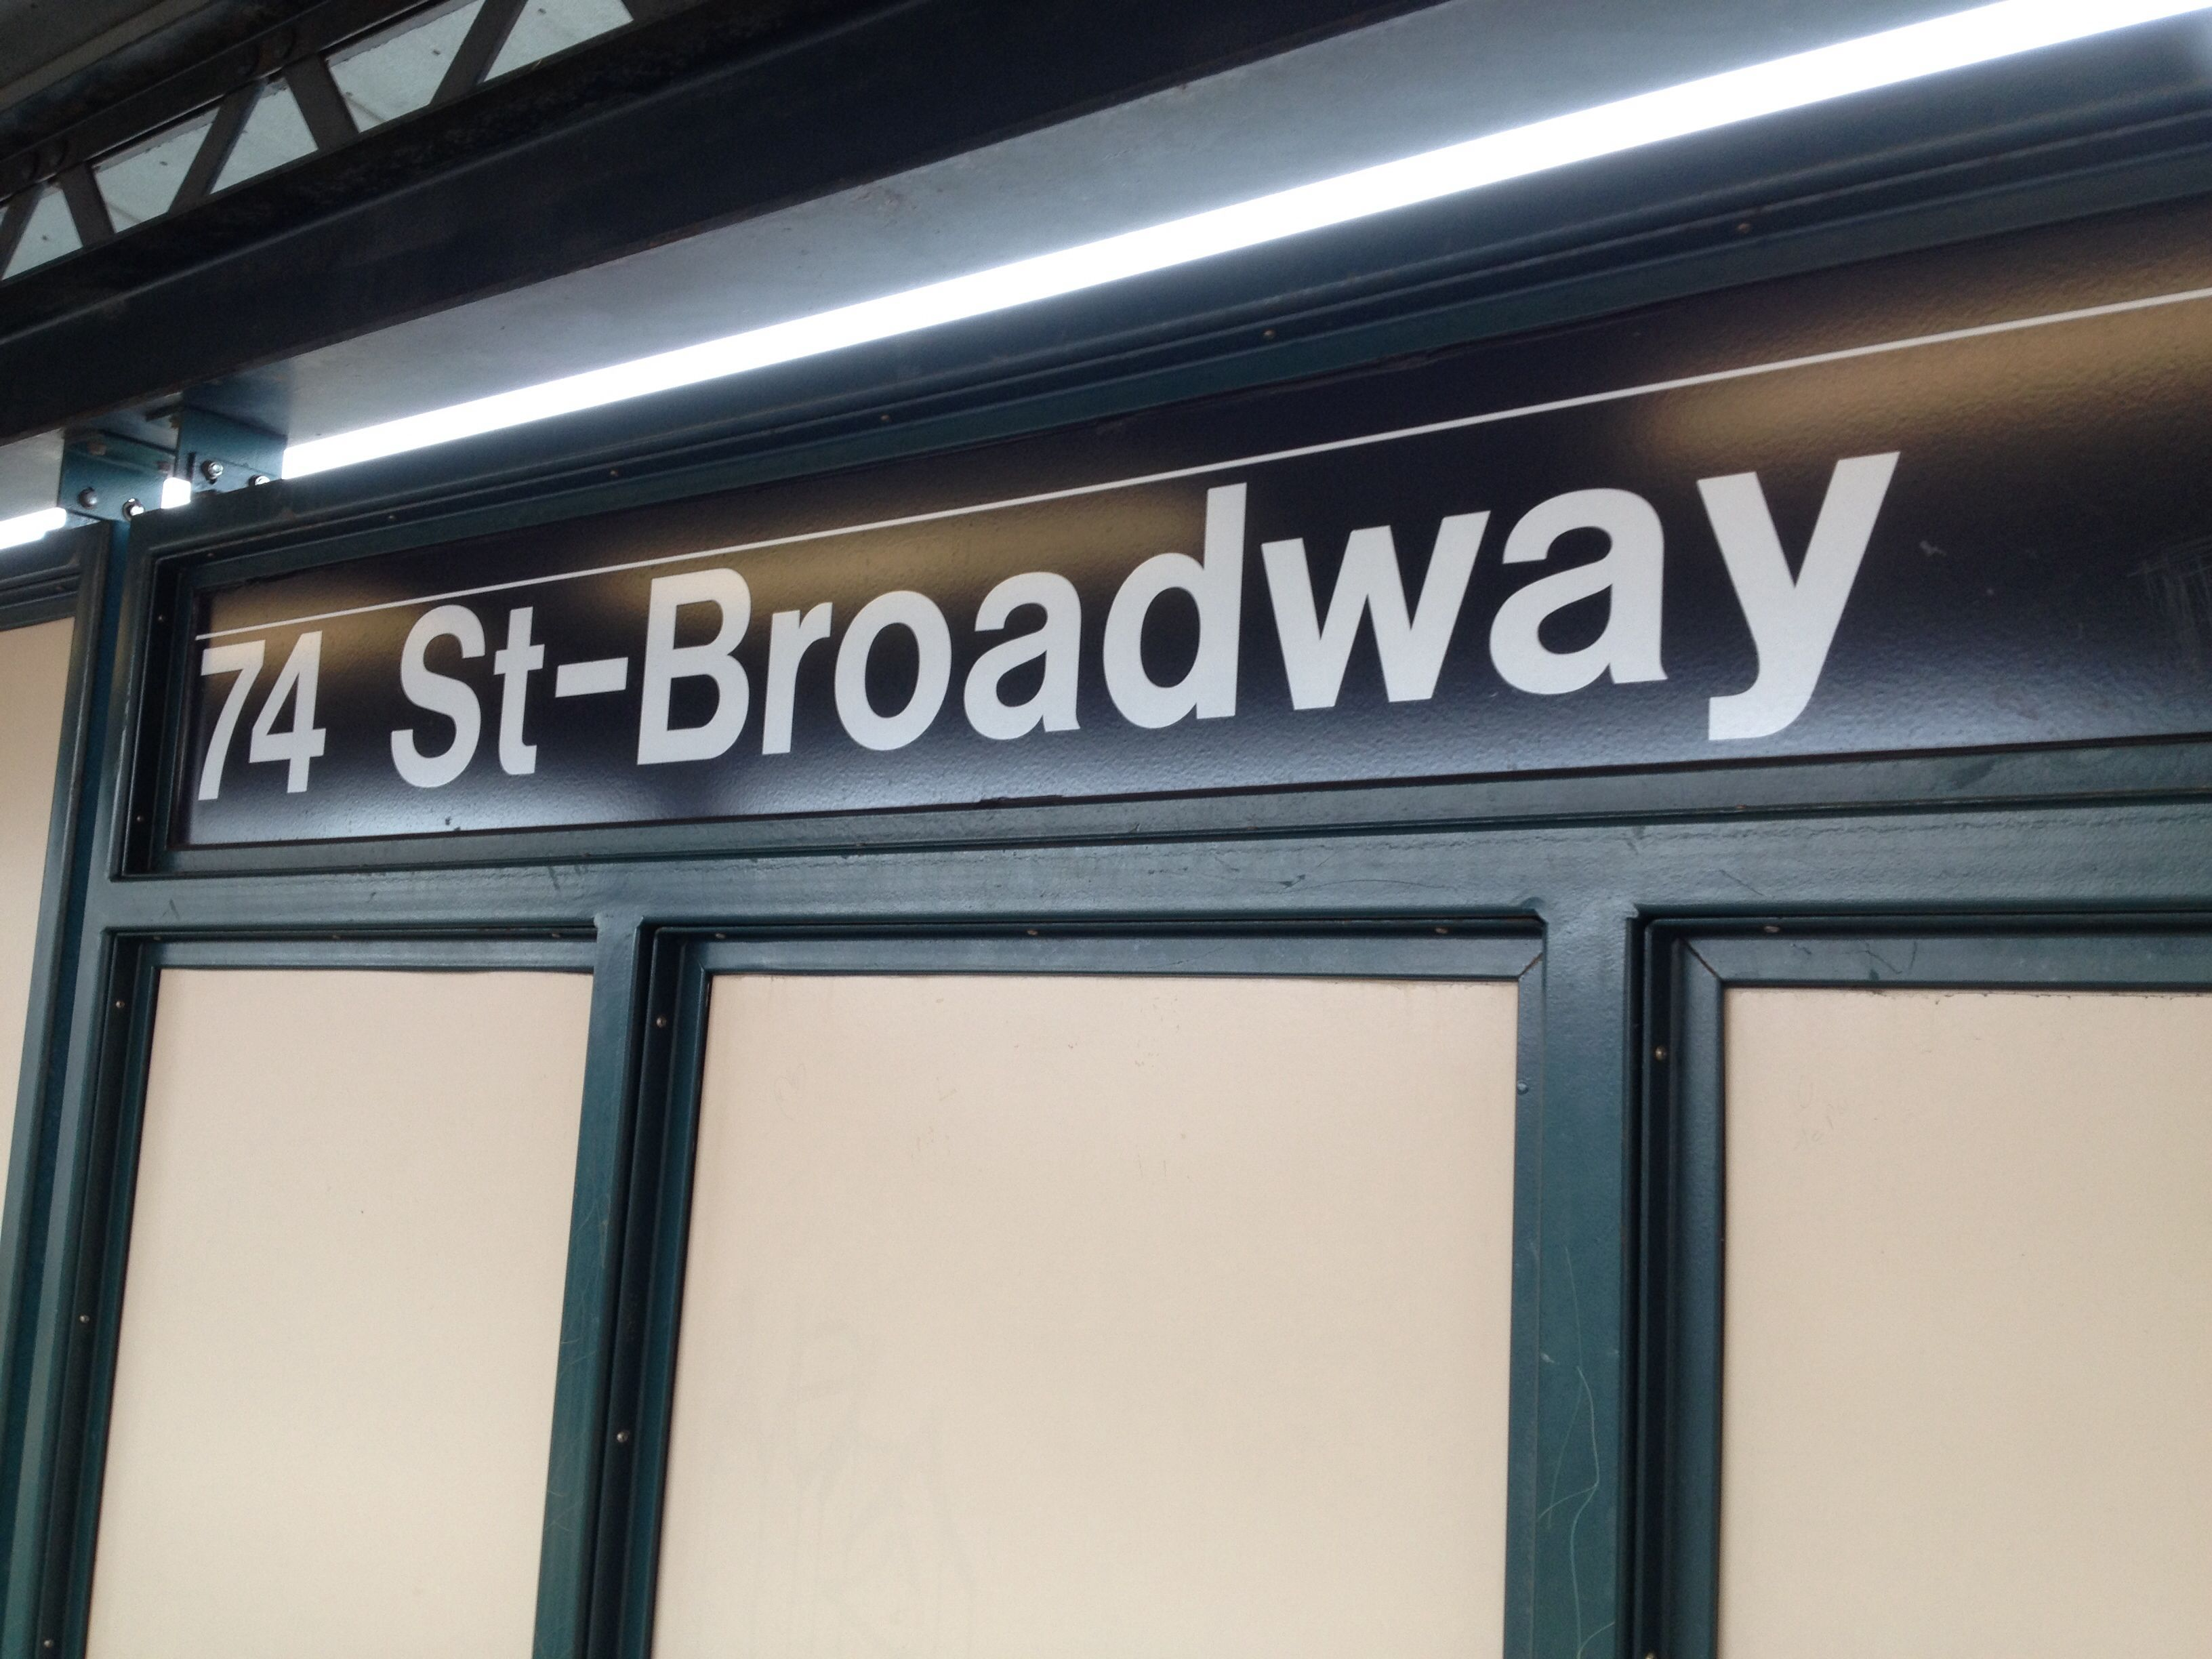 74th Street Station.  Jackson Heights, #Queens #NYC #MTA #Outerboros